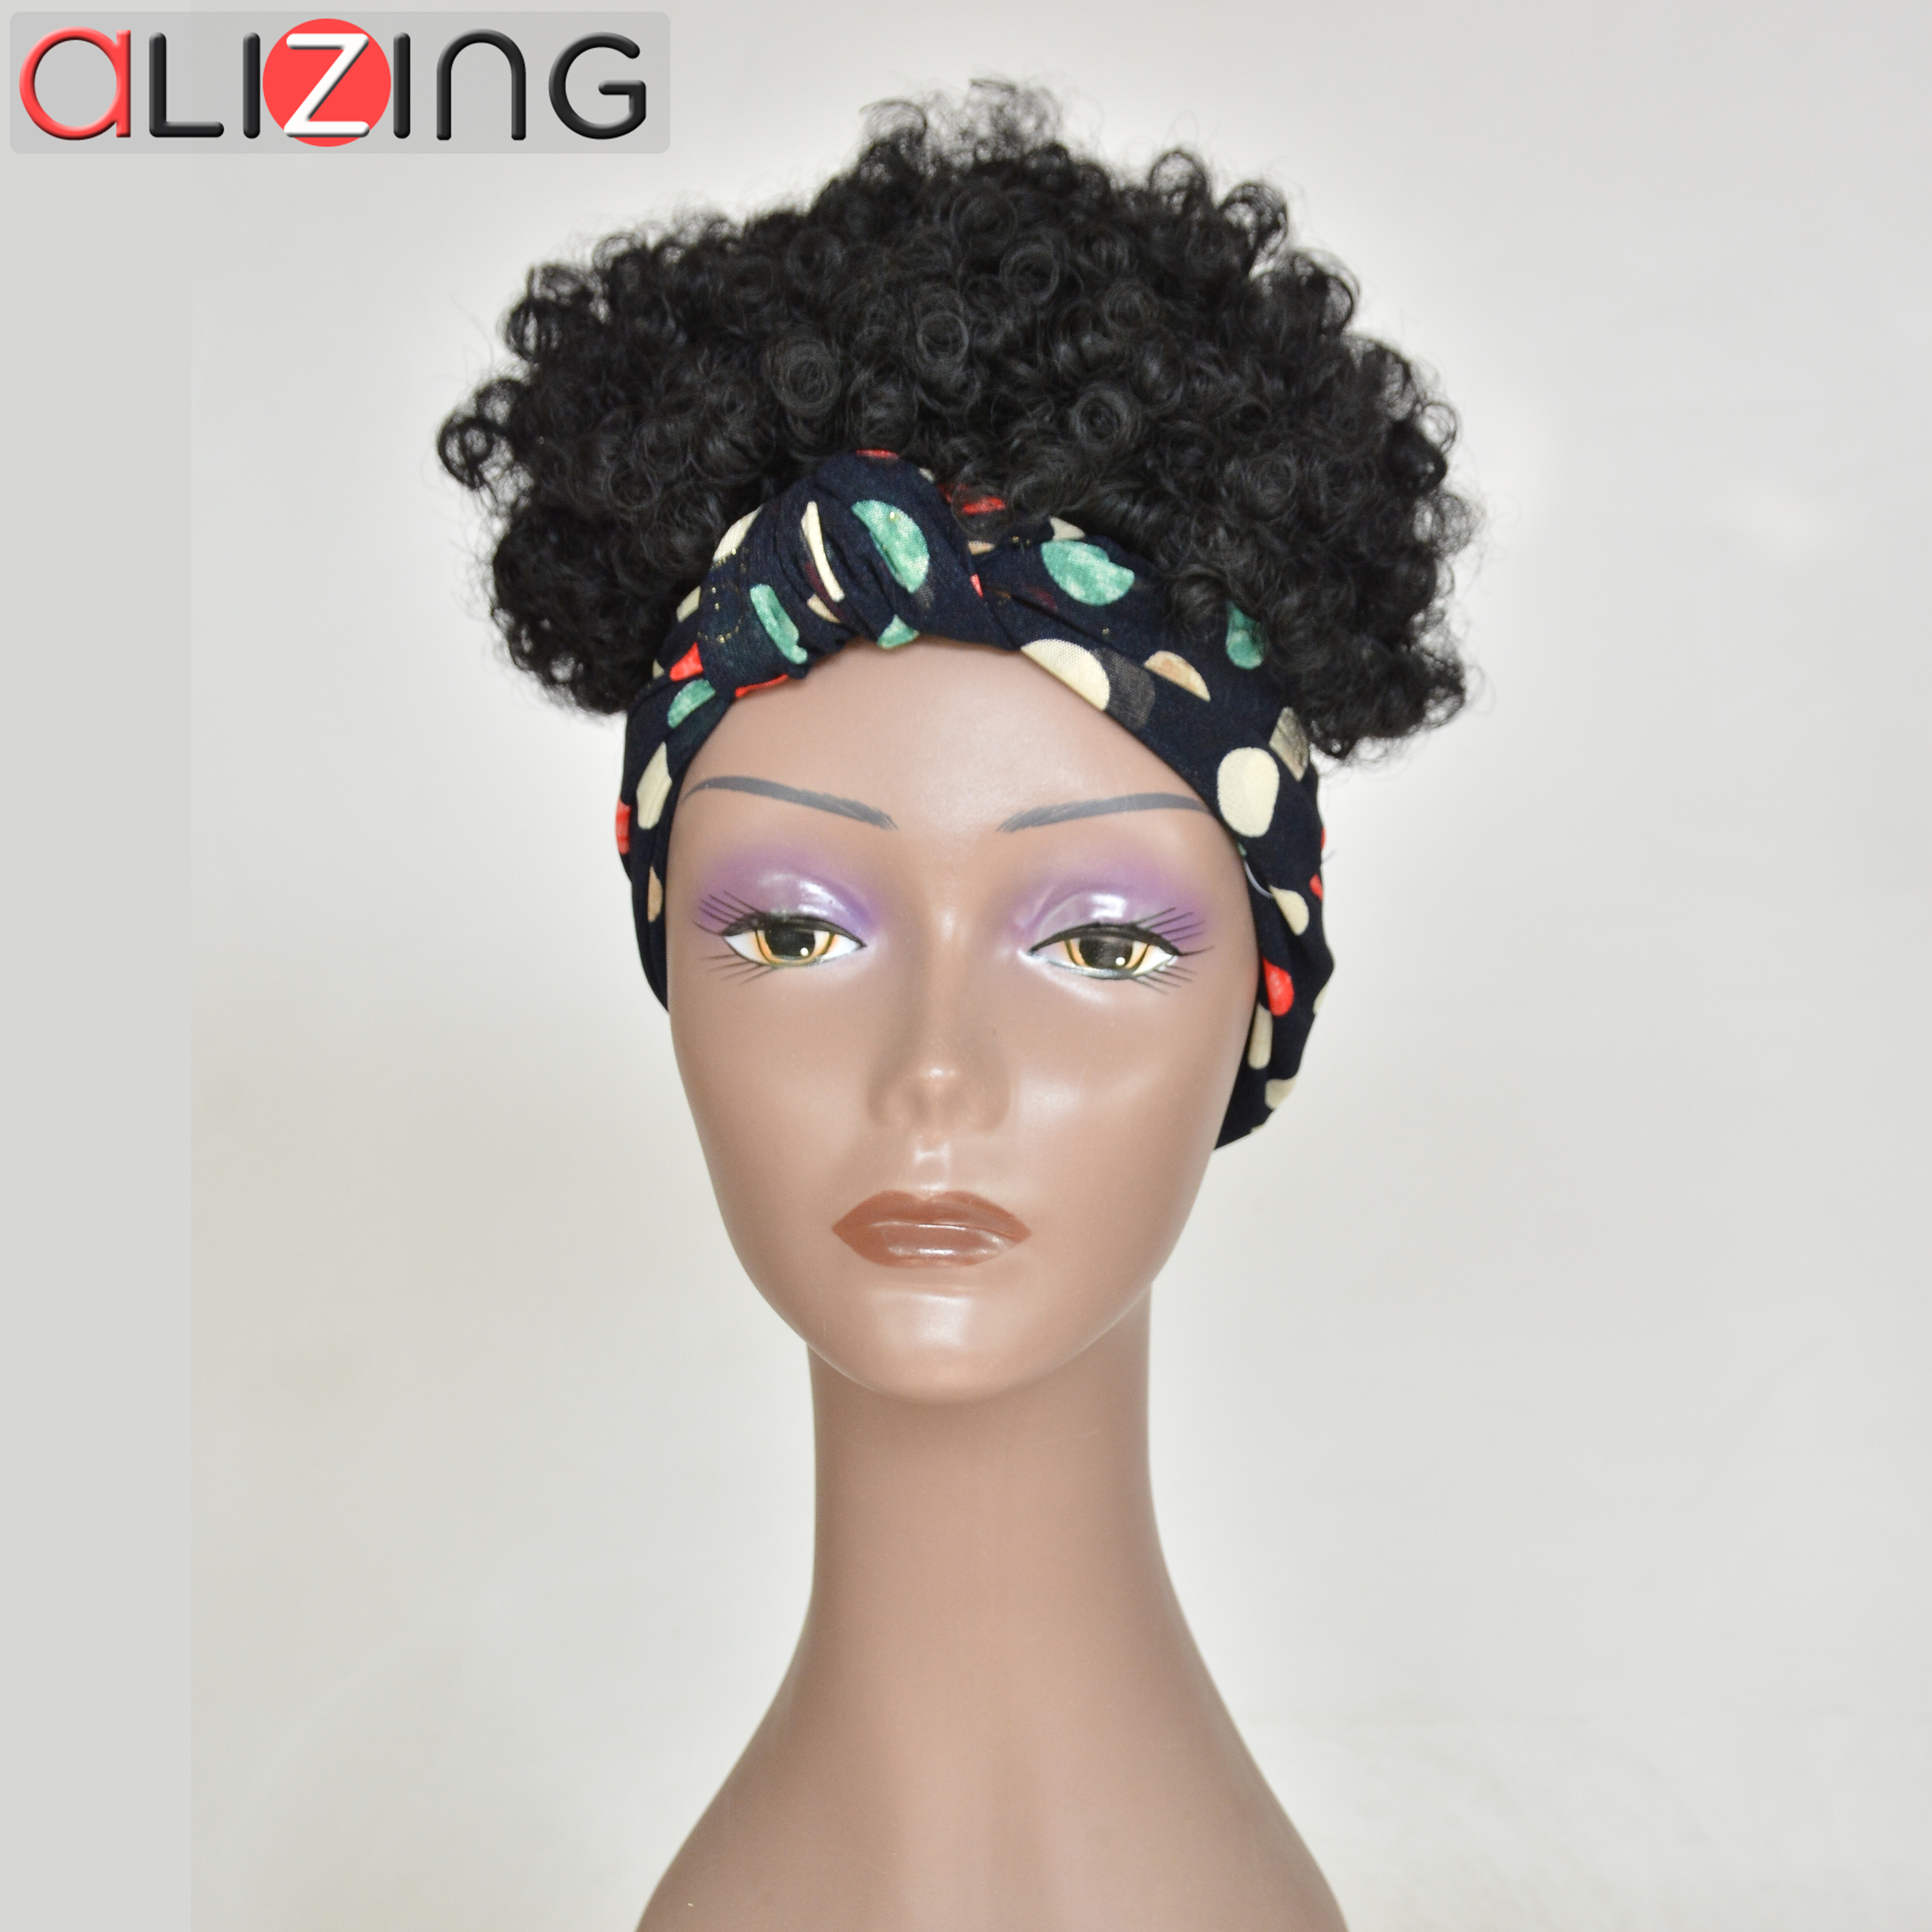 Alizing Curly Short Wig Synthetic With Headband High Temperature FFiber For Black Women  African Hairstyles Natural Black Hair